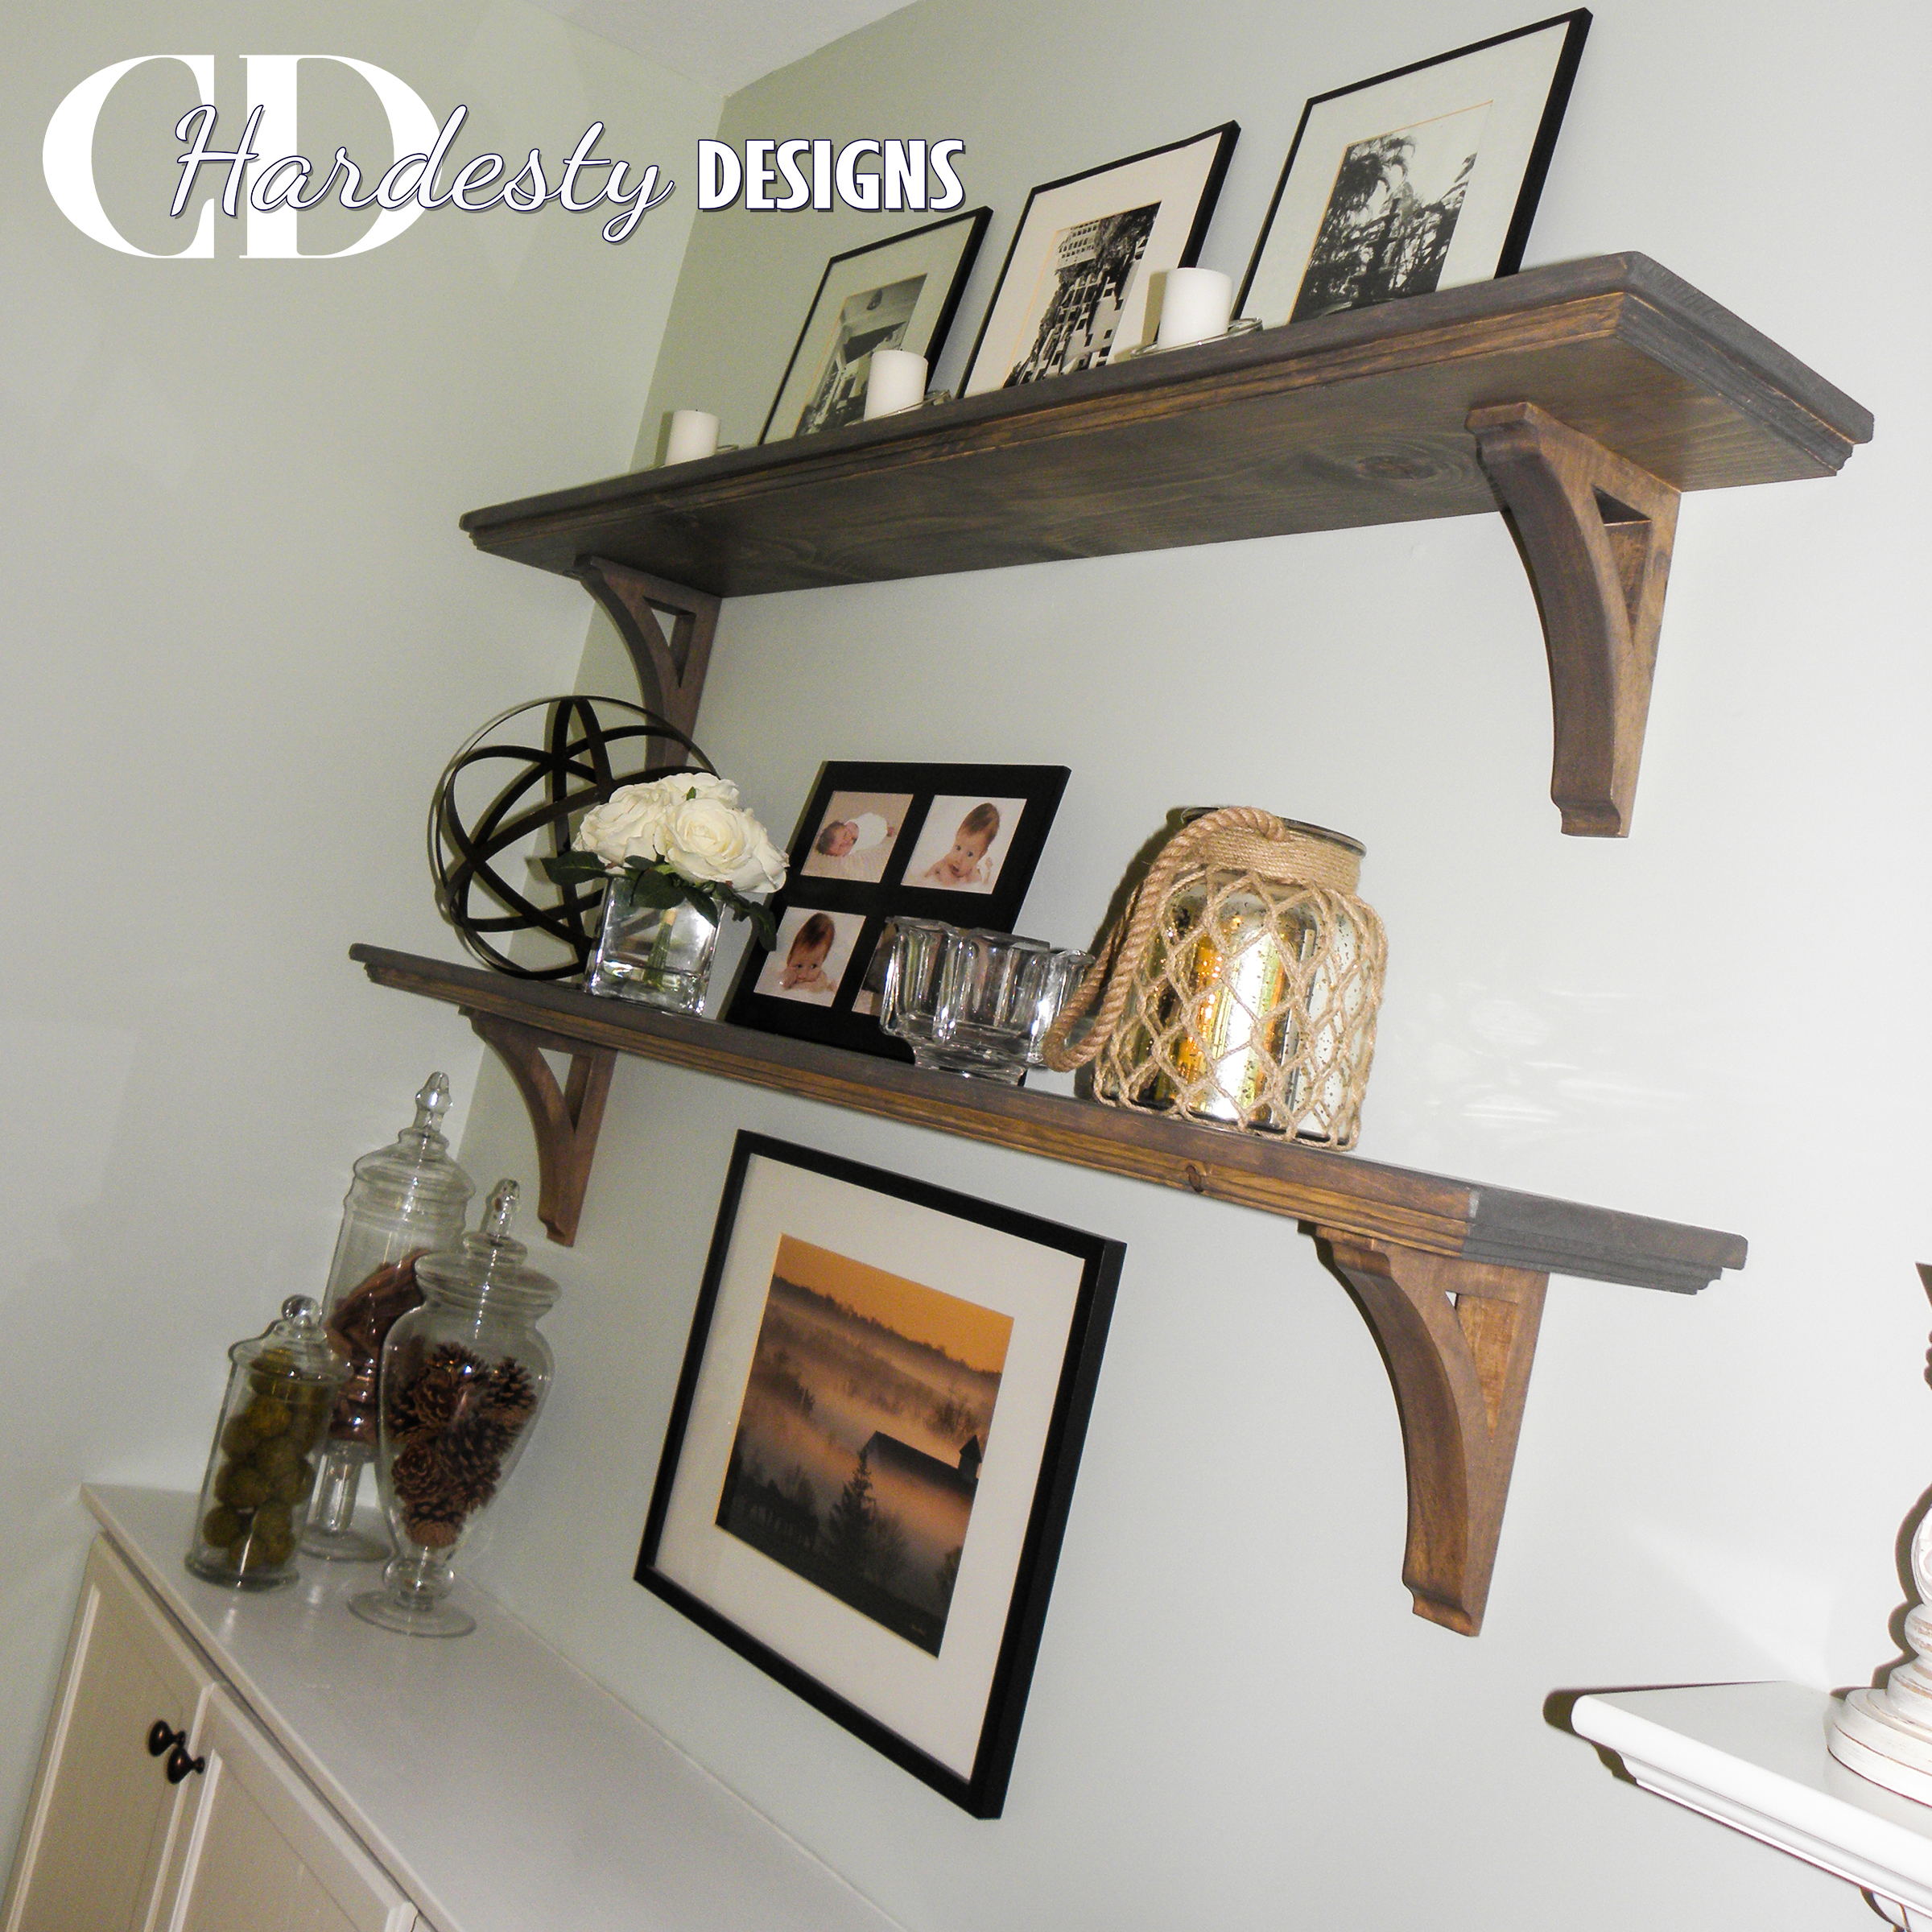 Interior shelf styling by CDHardesty Designs